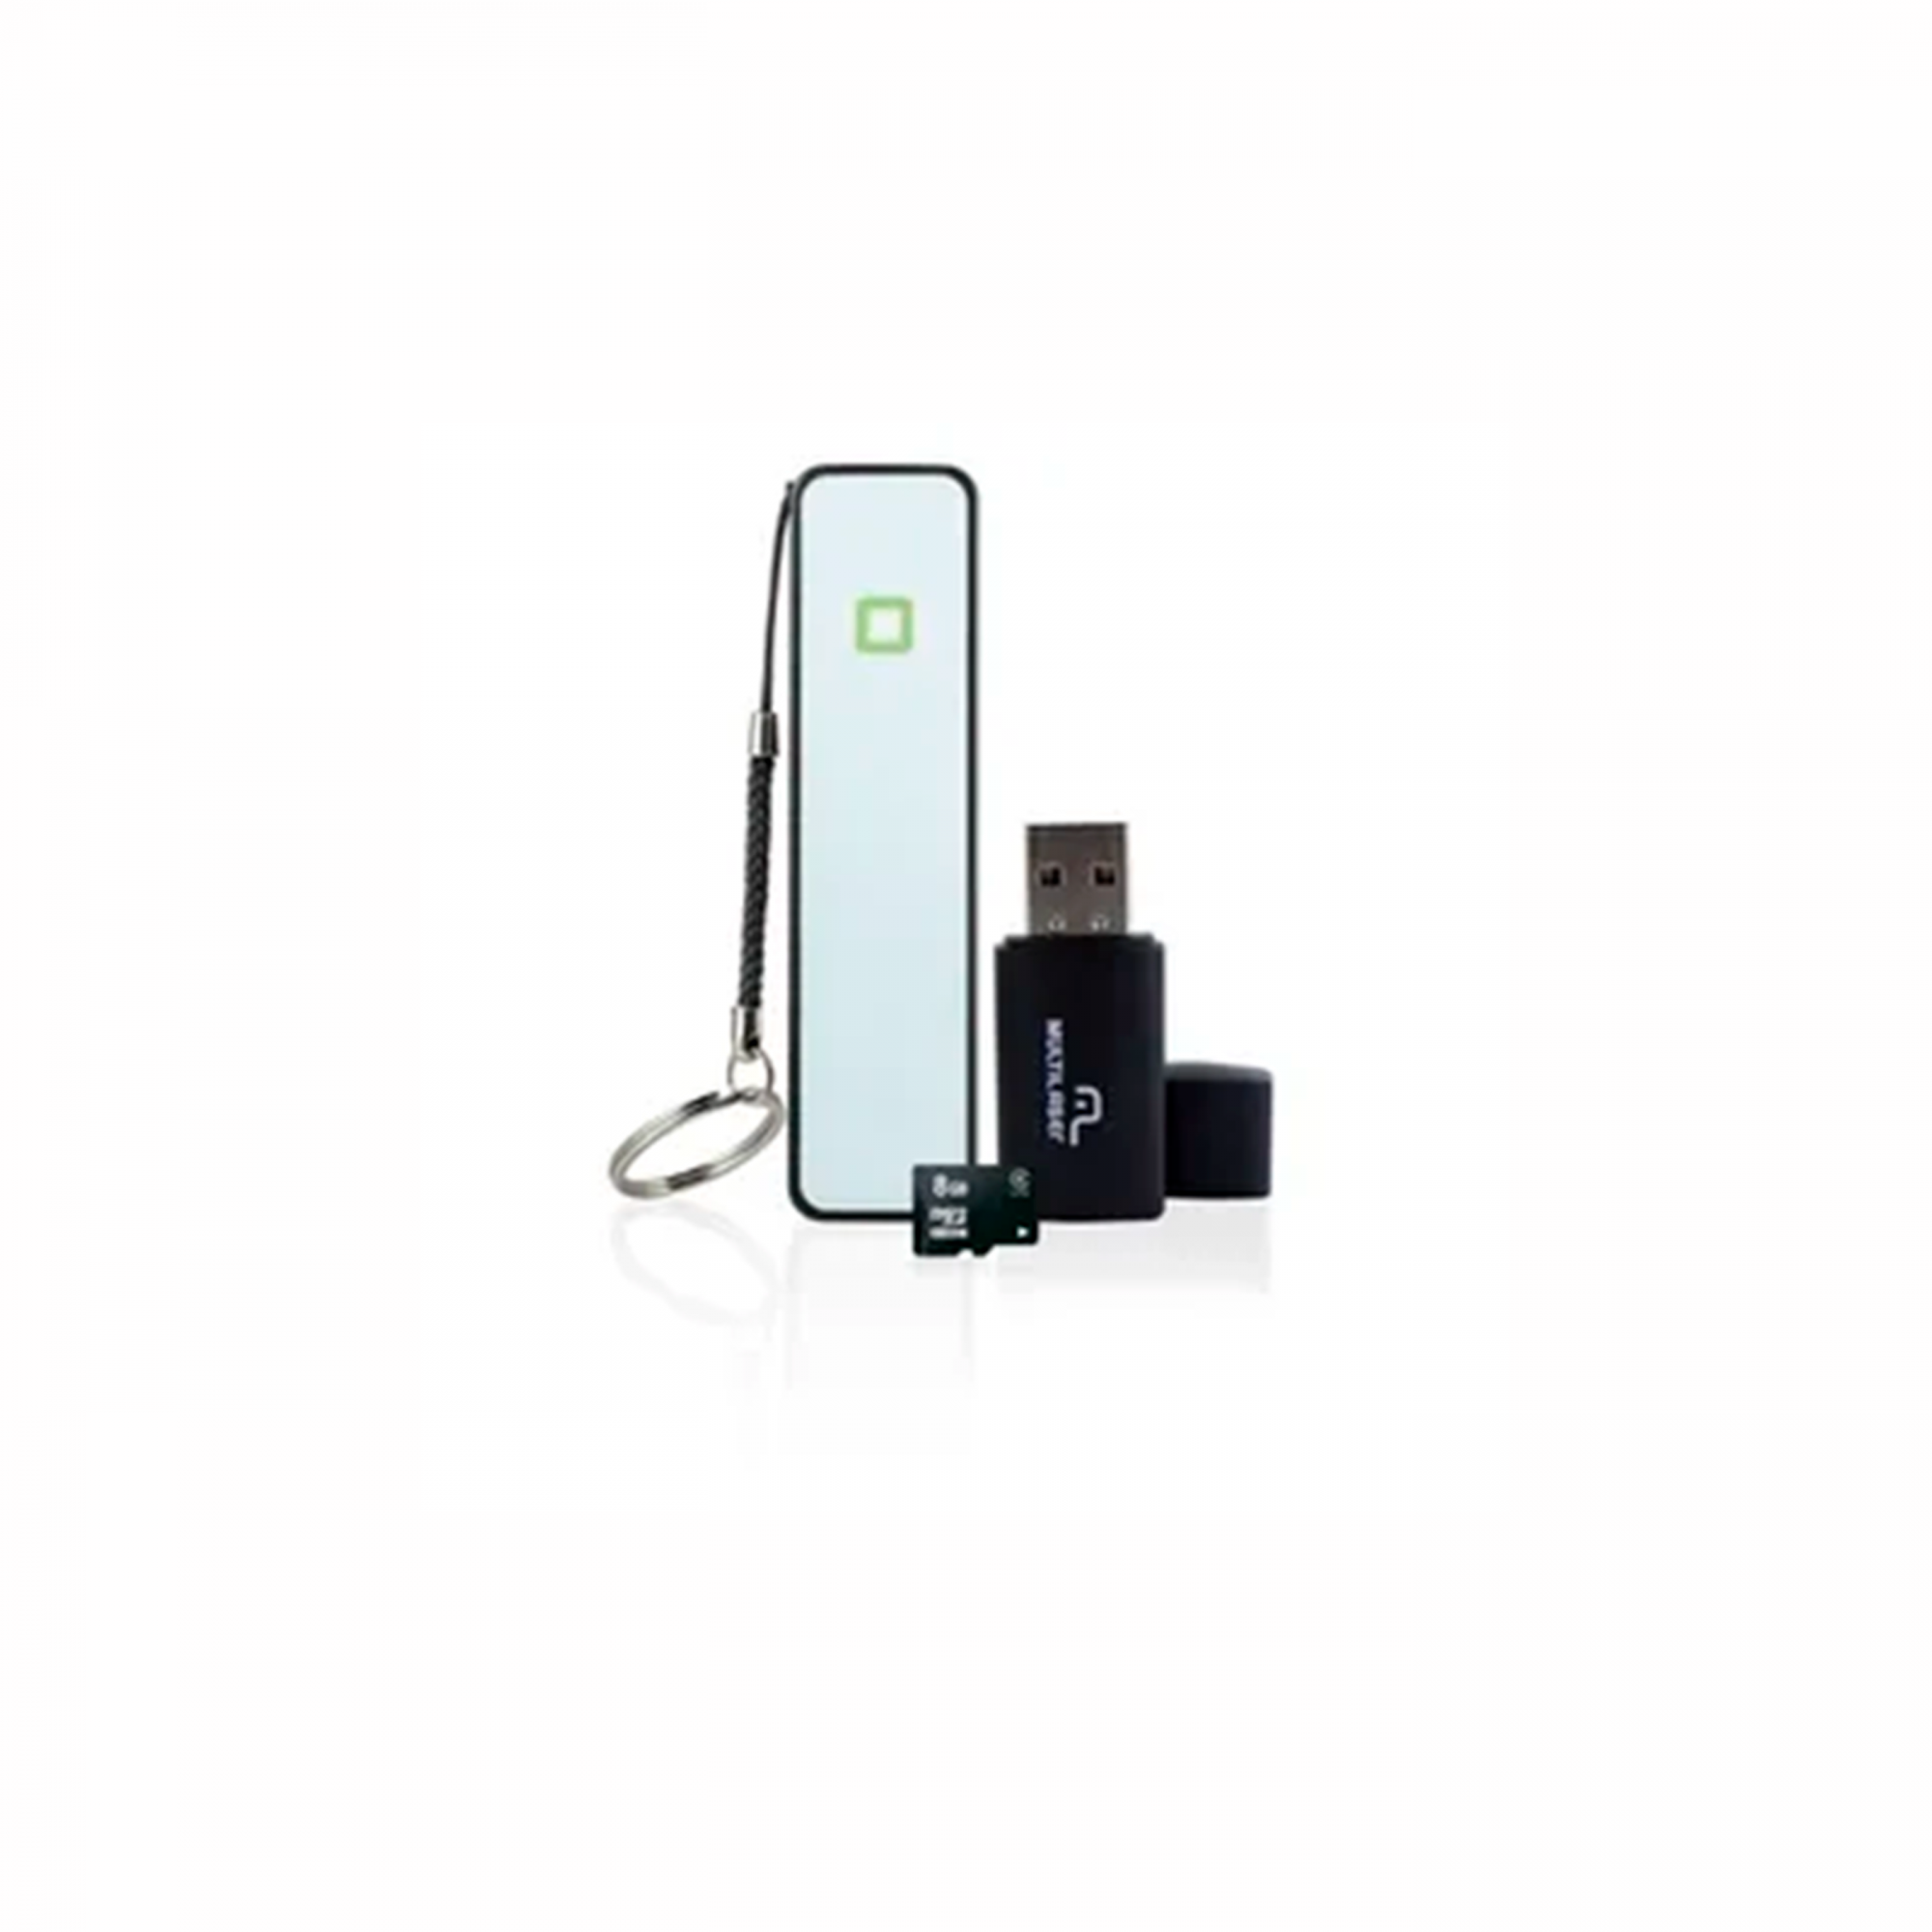 KIT SMART.PENDRIVE 8GB MC200 MULTILASER